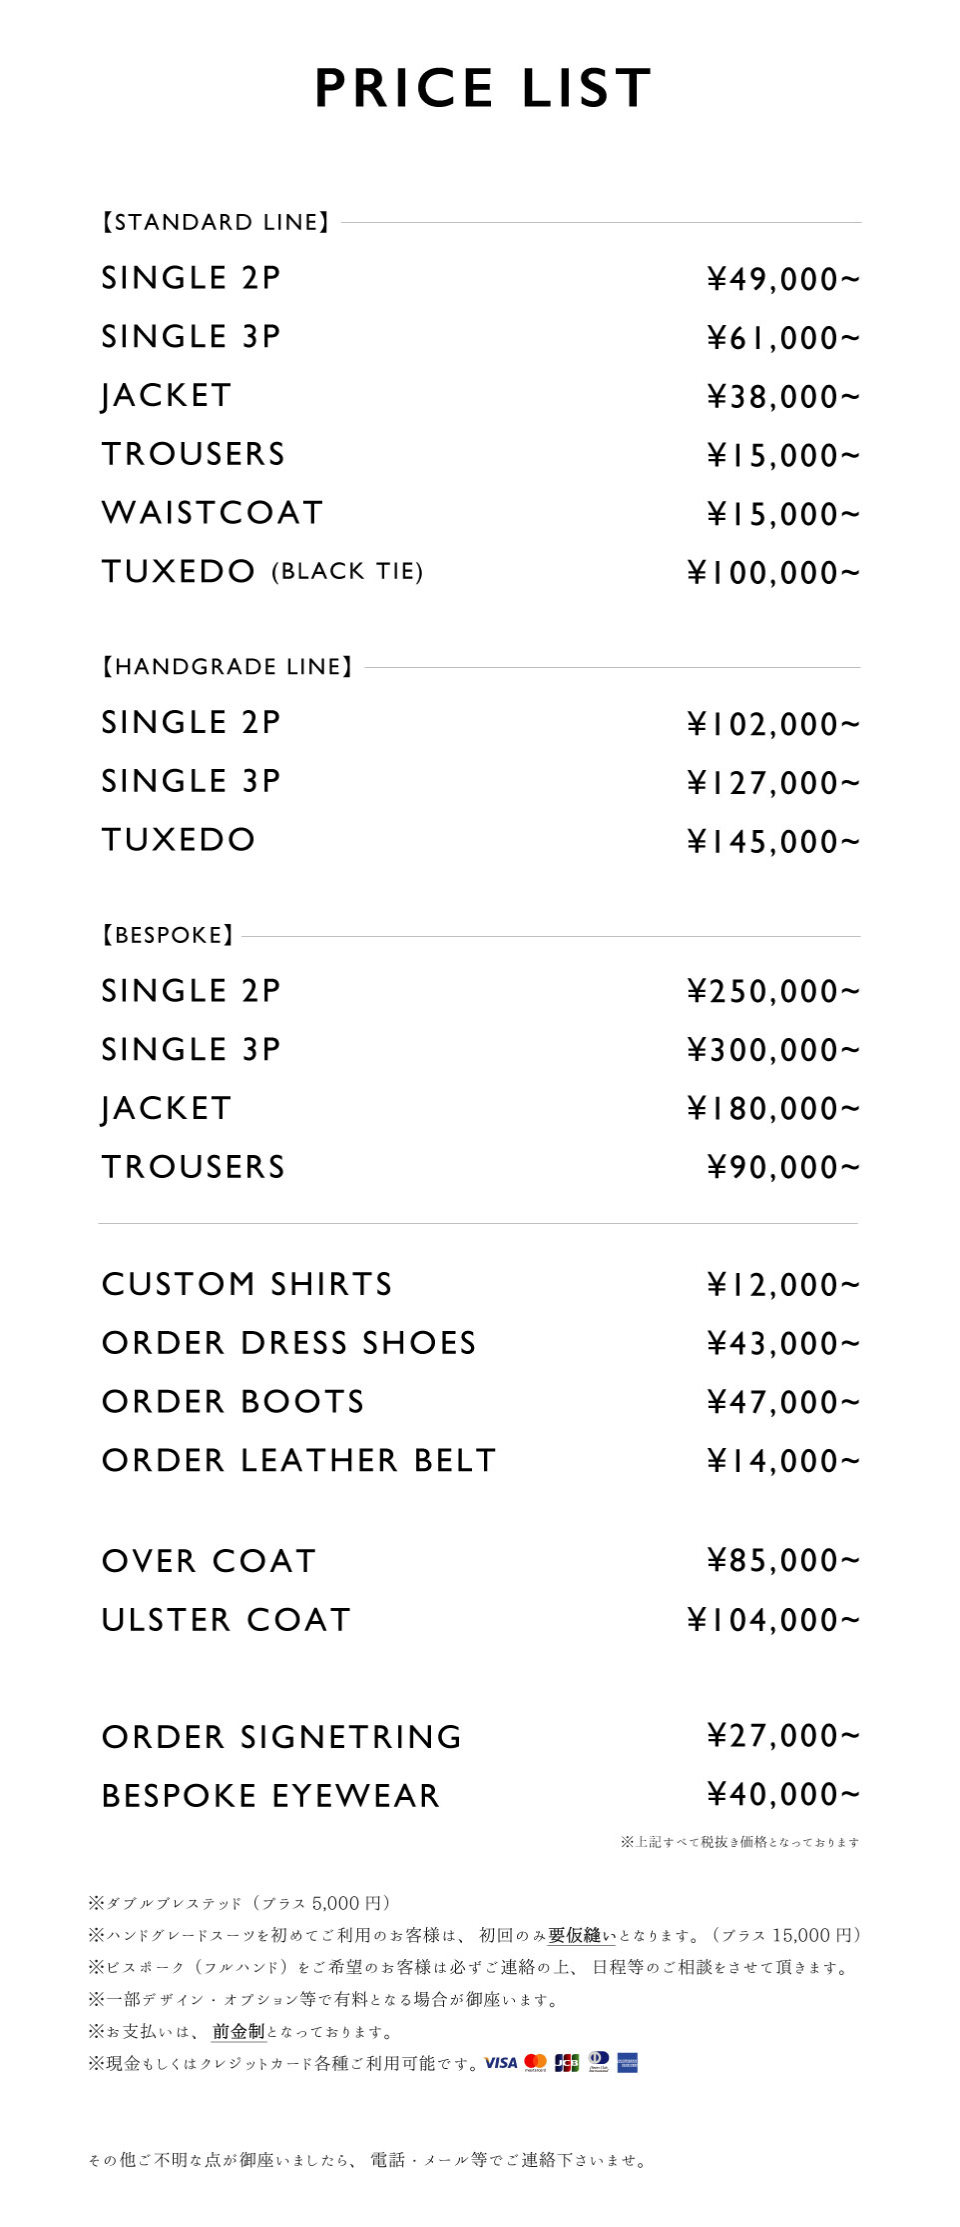 PRICELIST--BELGRAVIA&SONS